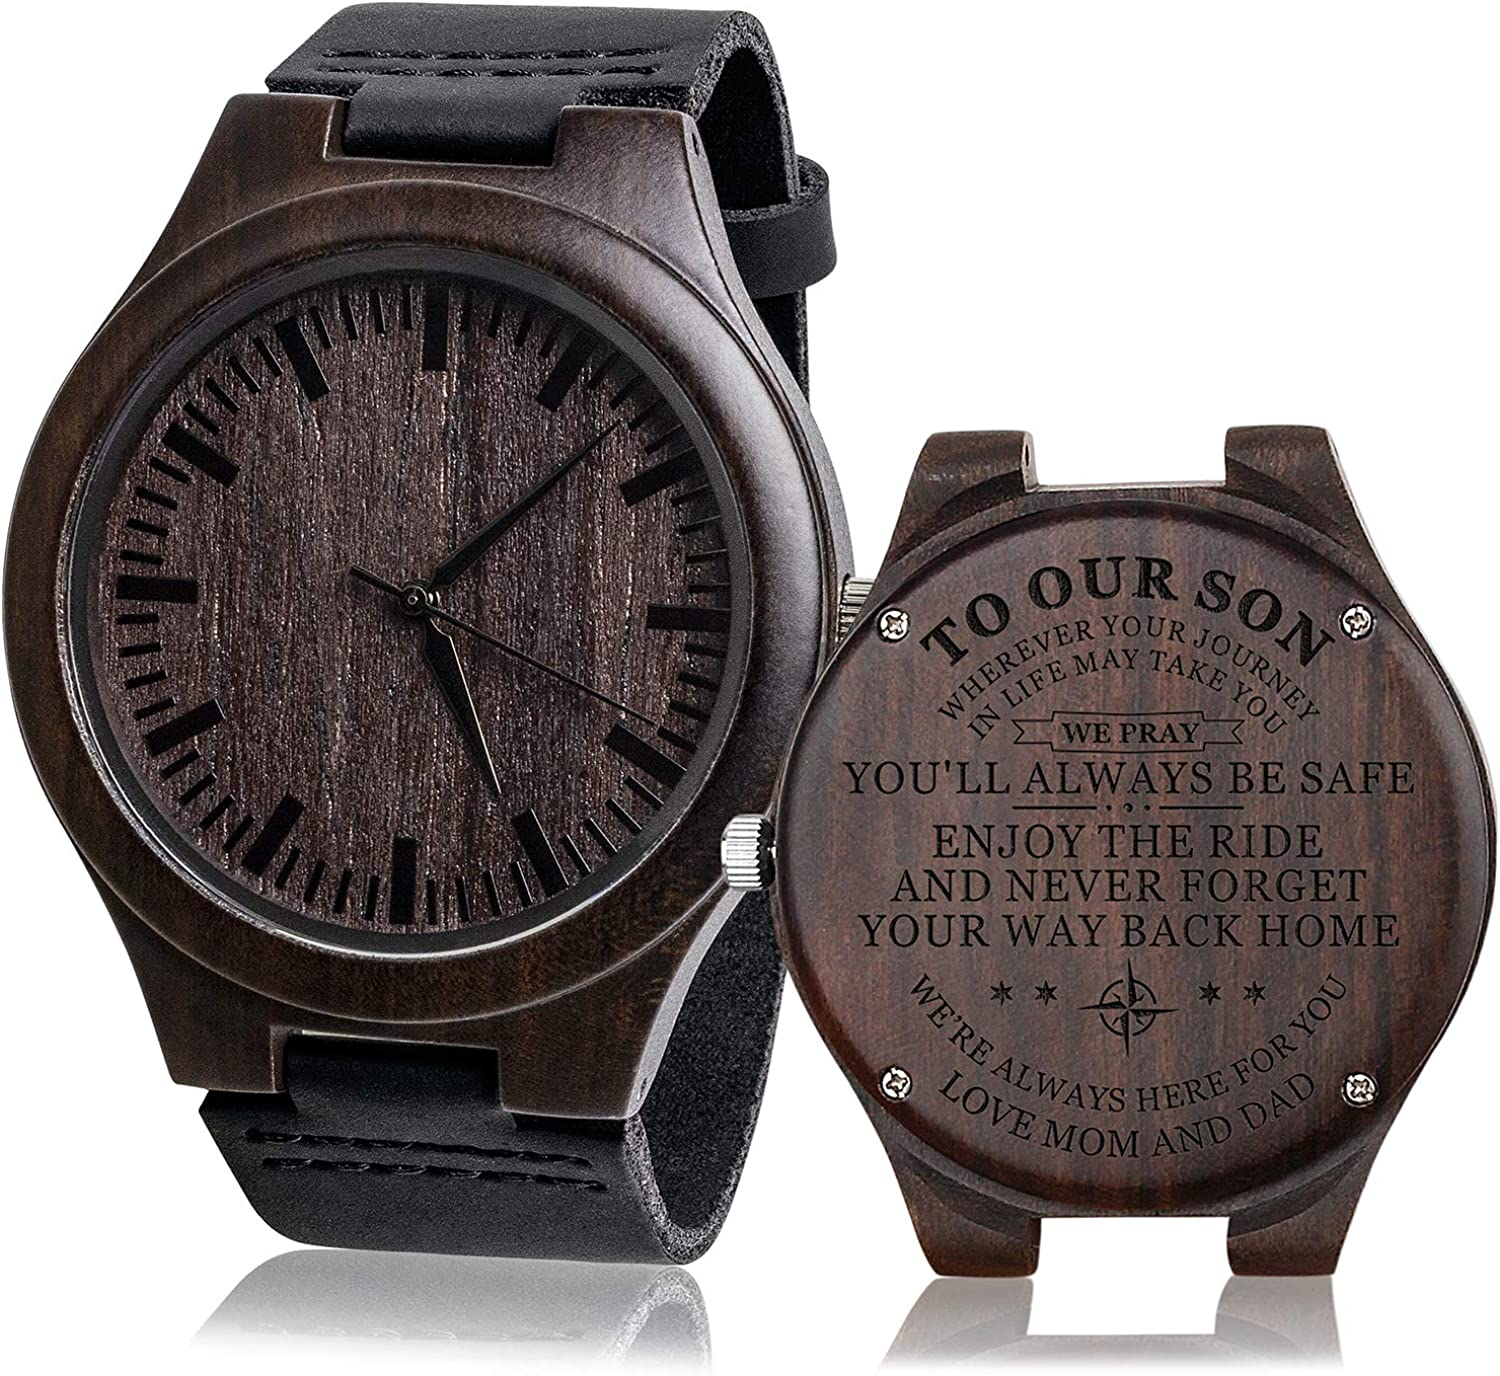 Engraved Mens Vintage Analog Quartz Wooden Wrist Watches Handmade Casual Men Father Watch with Cowhide Leather Strap Personalized Gifts for Men Husband Boyfriend Dad